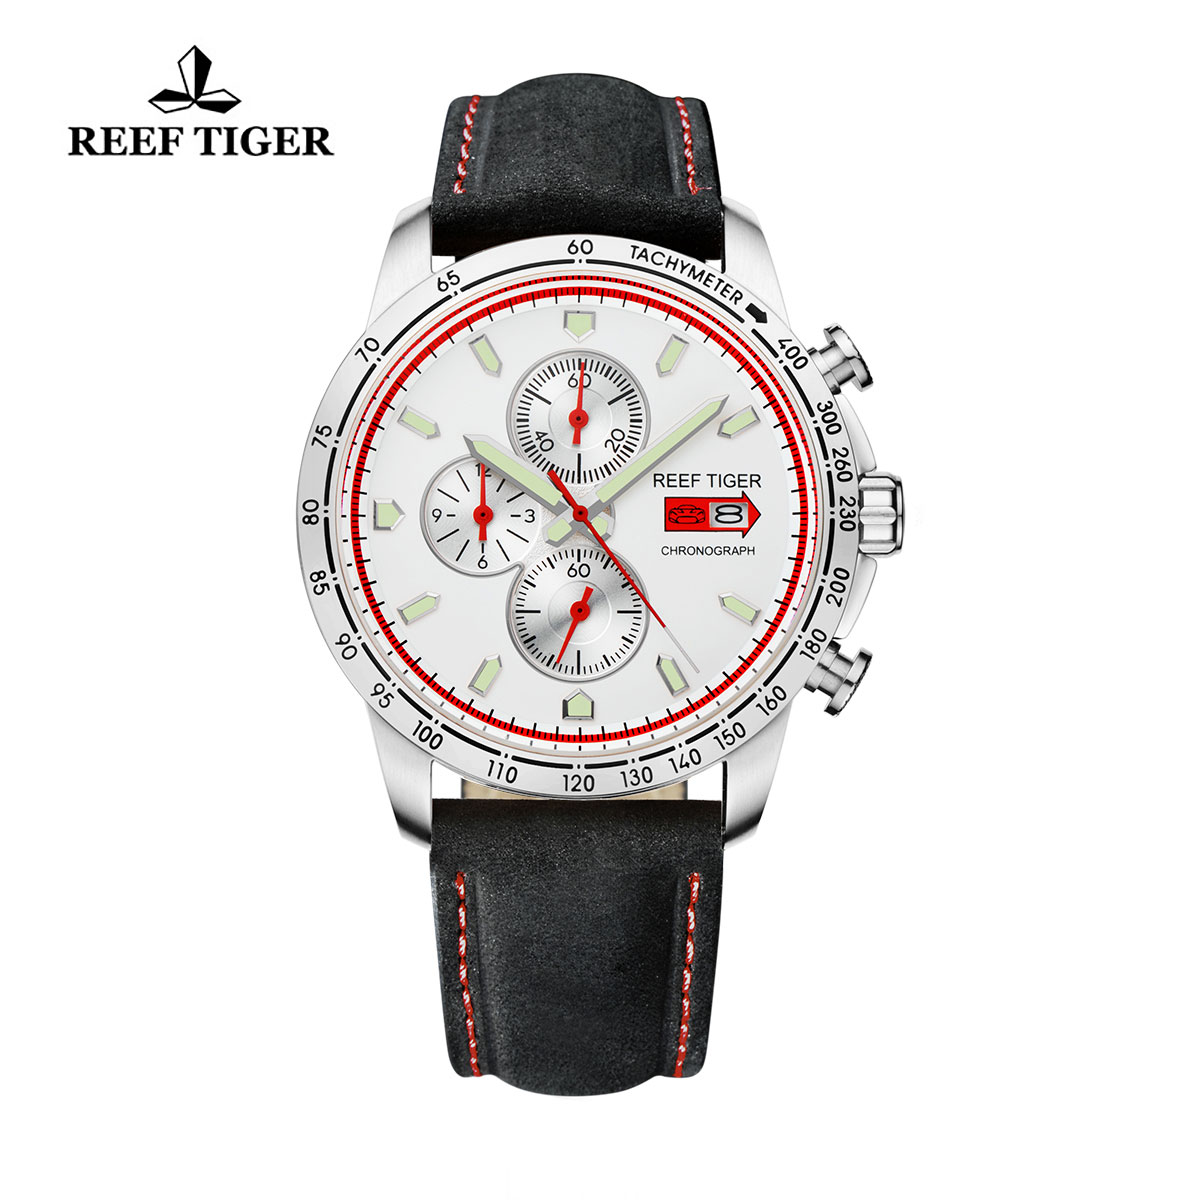 Reef Tiger Racing Casual Watch Stainless Steel White Dial Leather Strap Chronograph Watch RGA3029-YWB